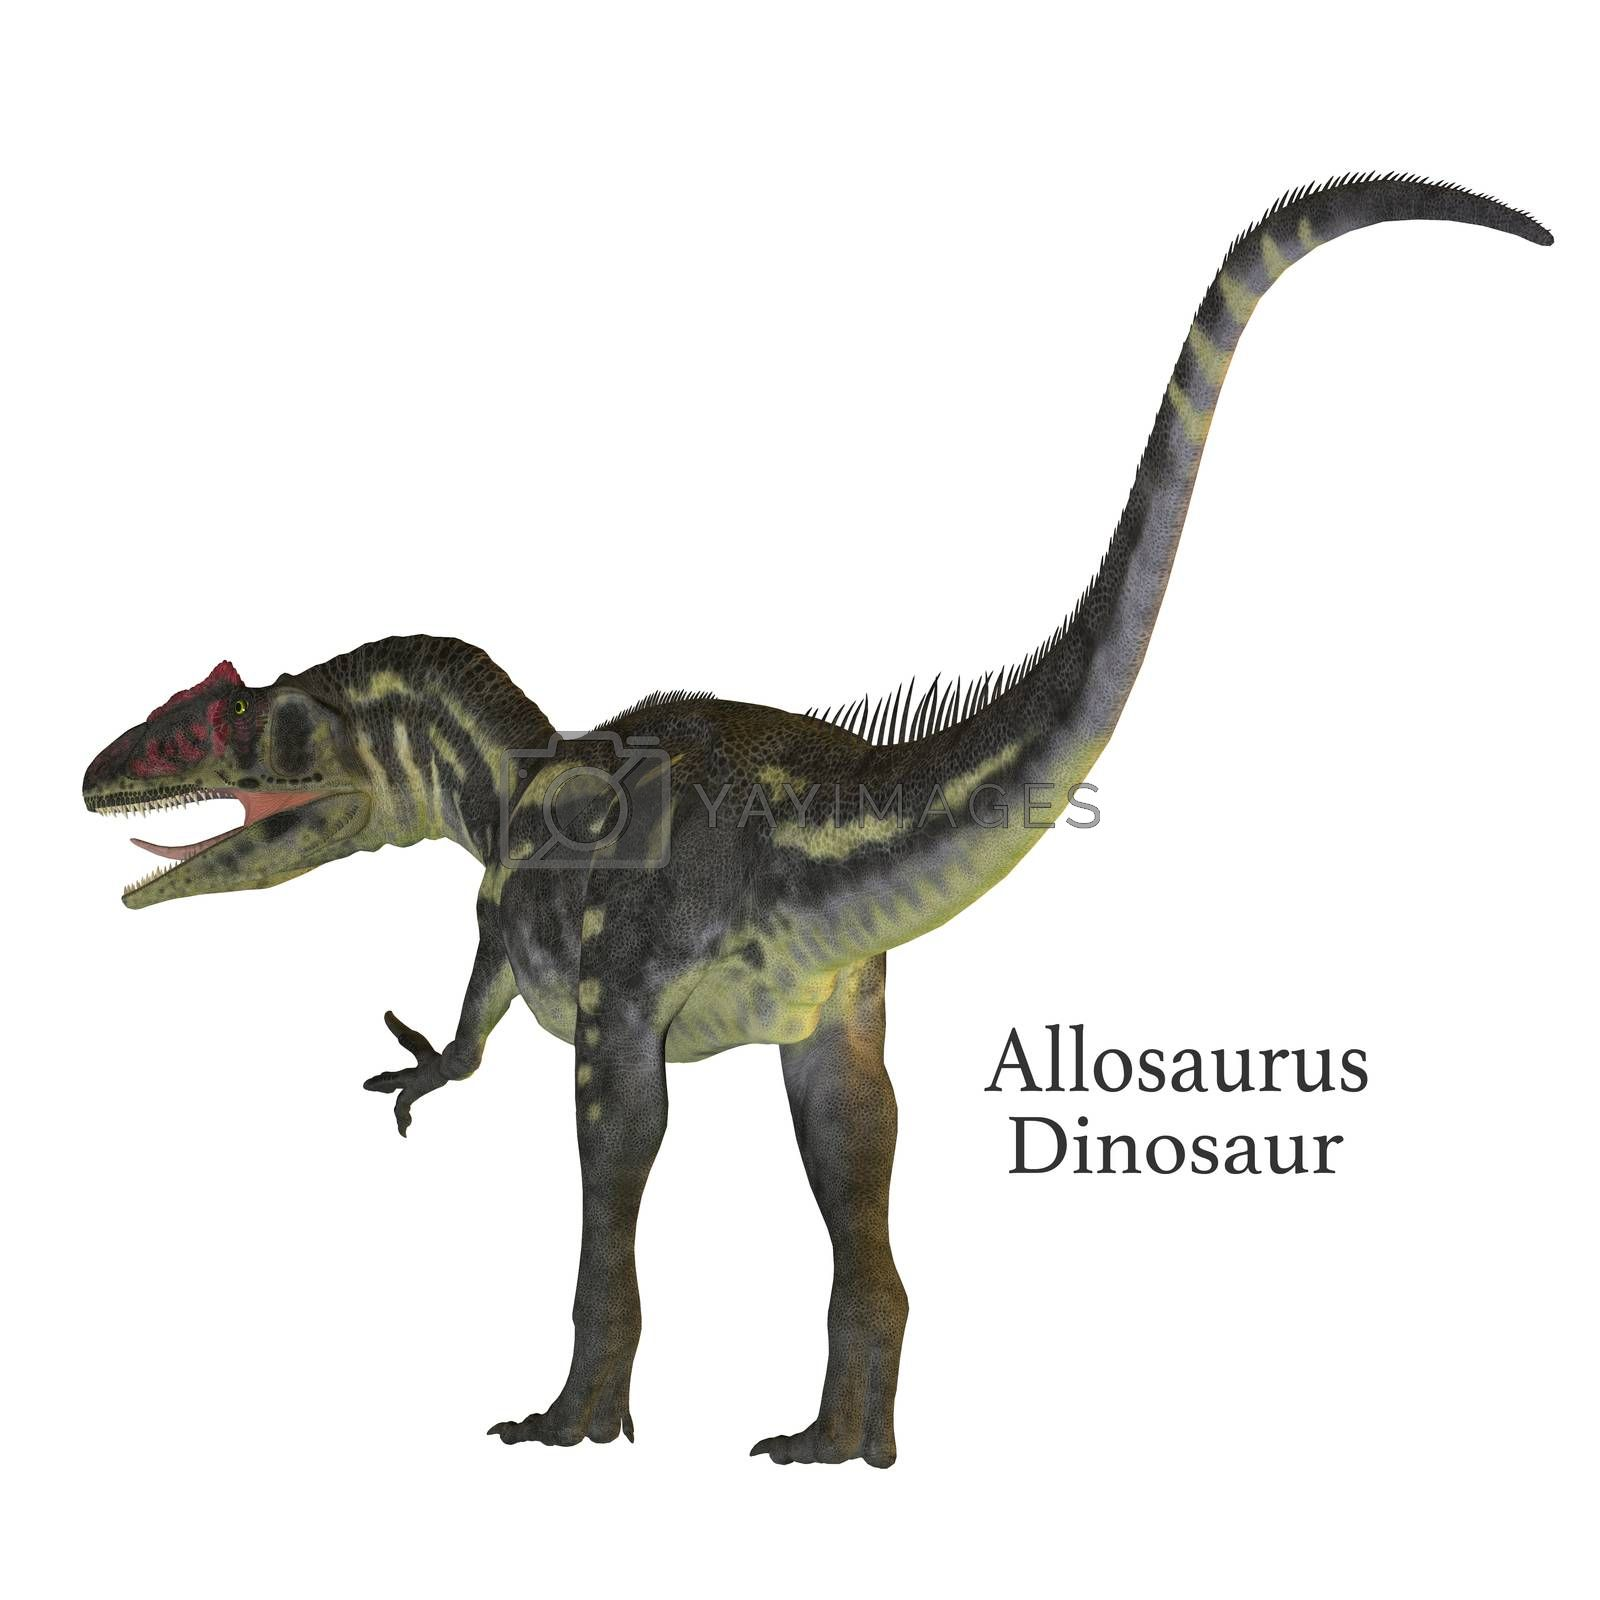 Allosaurus was a carnivorous theropod dinosaur that lived in North America in the Jurassic Period.